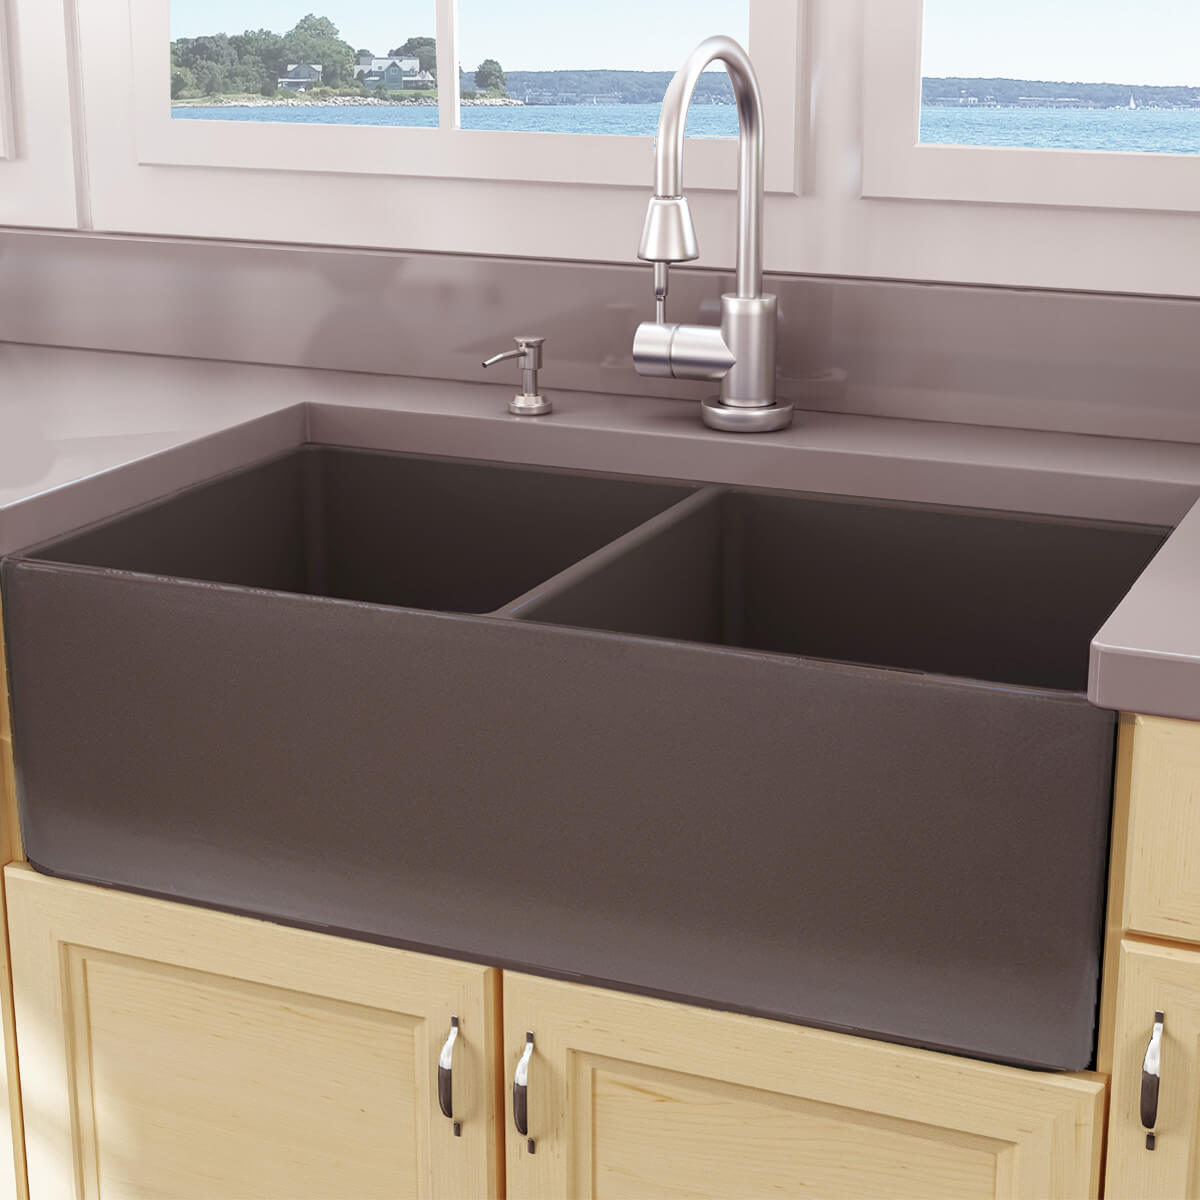 Brown Fireclay Farm Sink